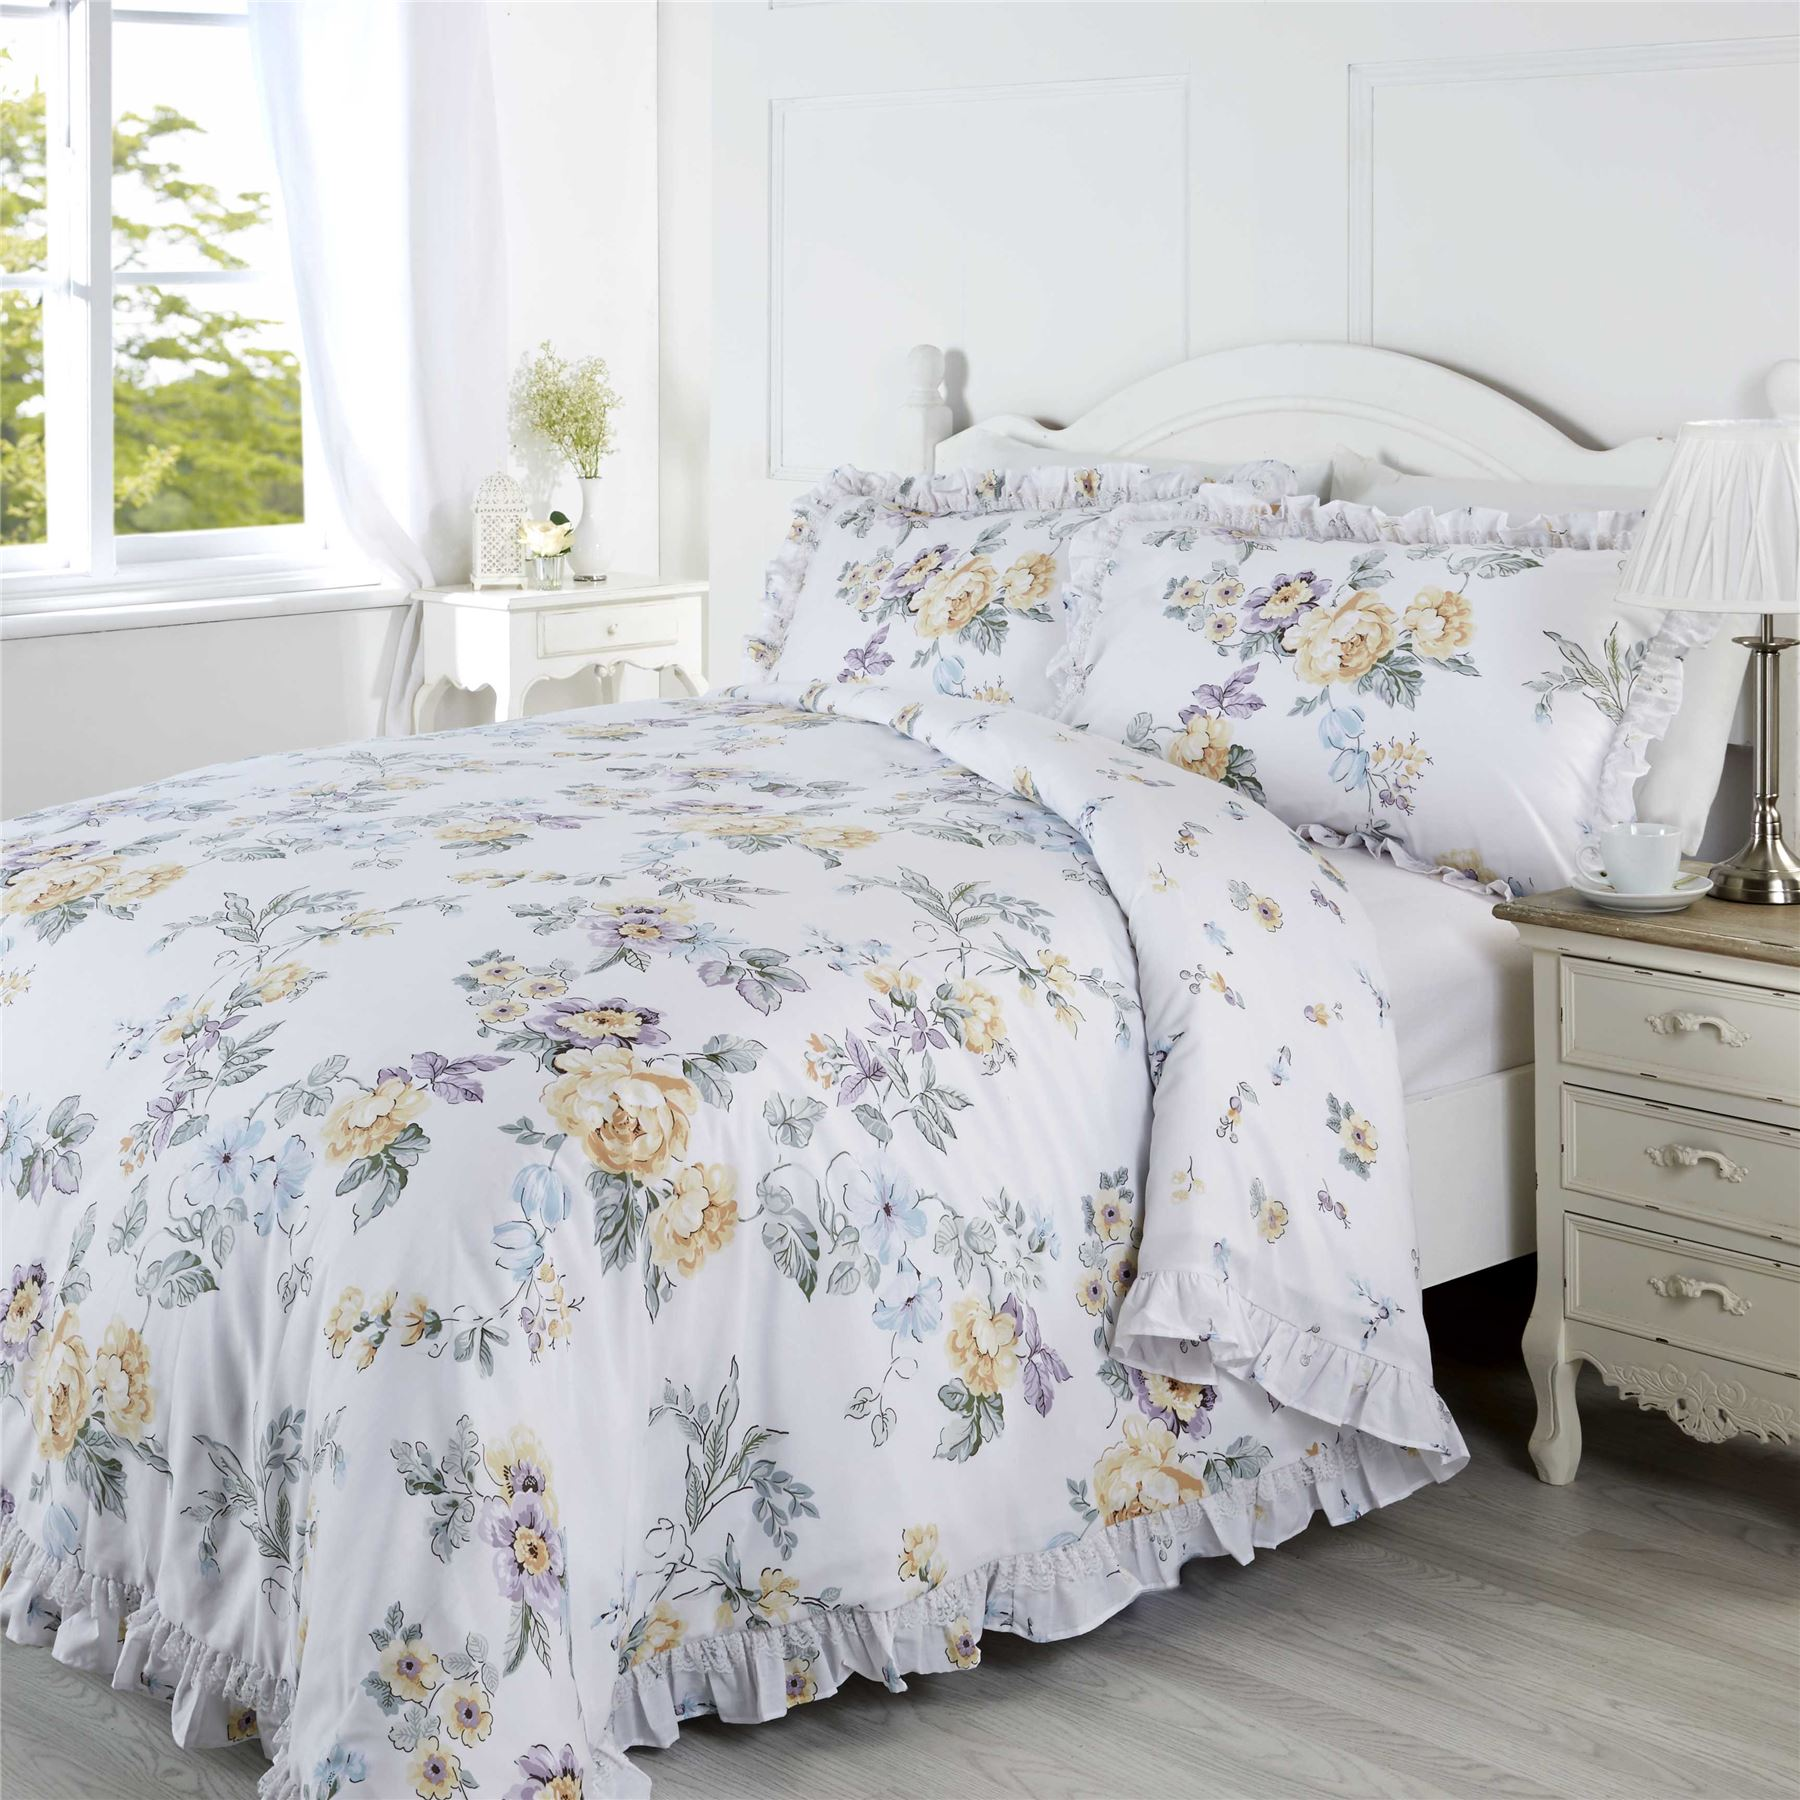 King Bed Duvet Cover Floral Quilt Duvet Cover And Pillowcase Bedding Bed Set